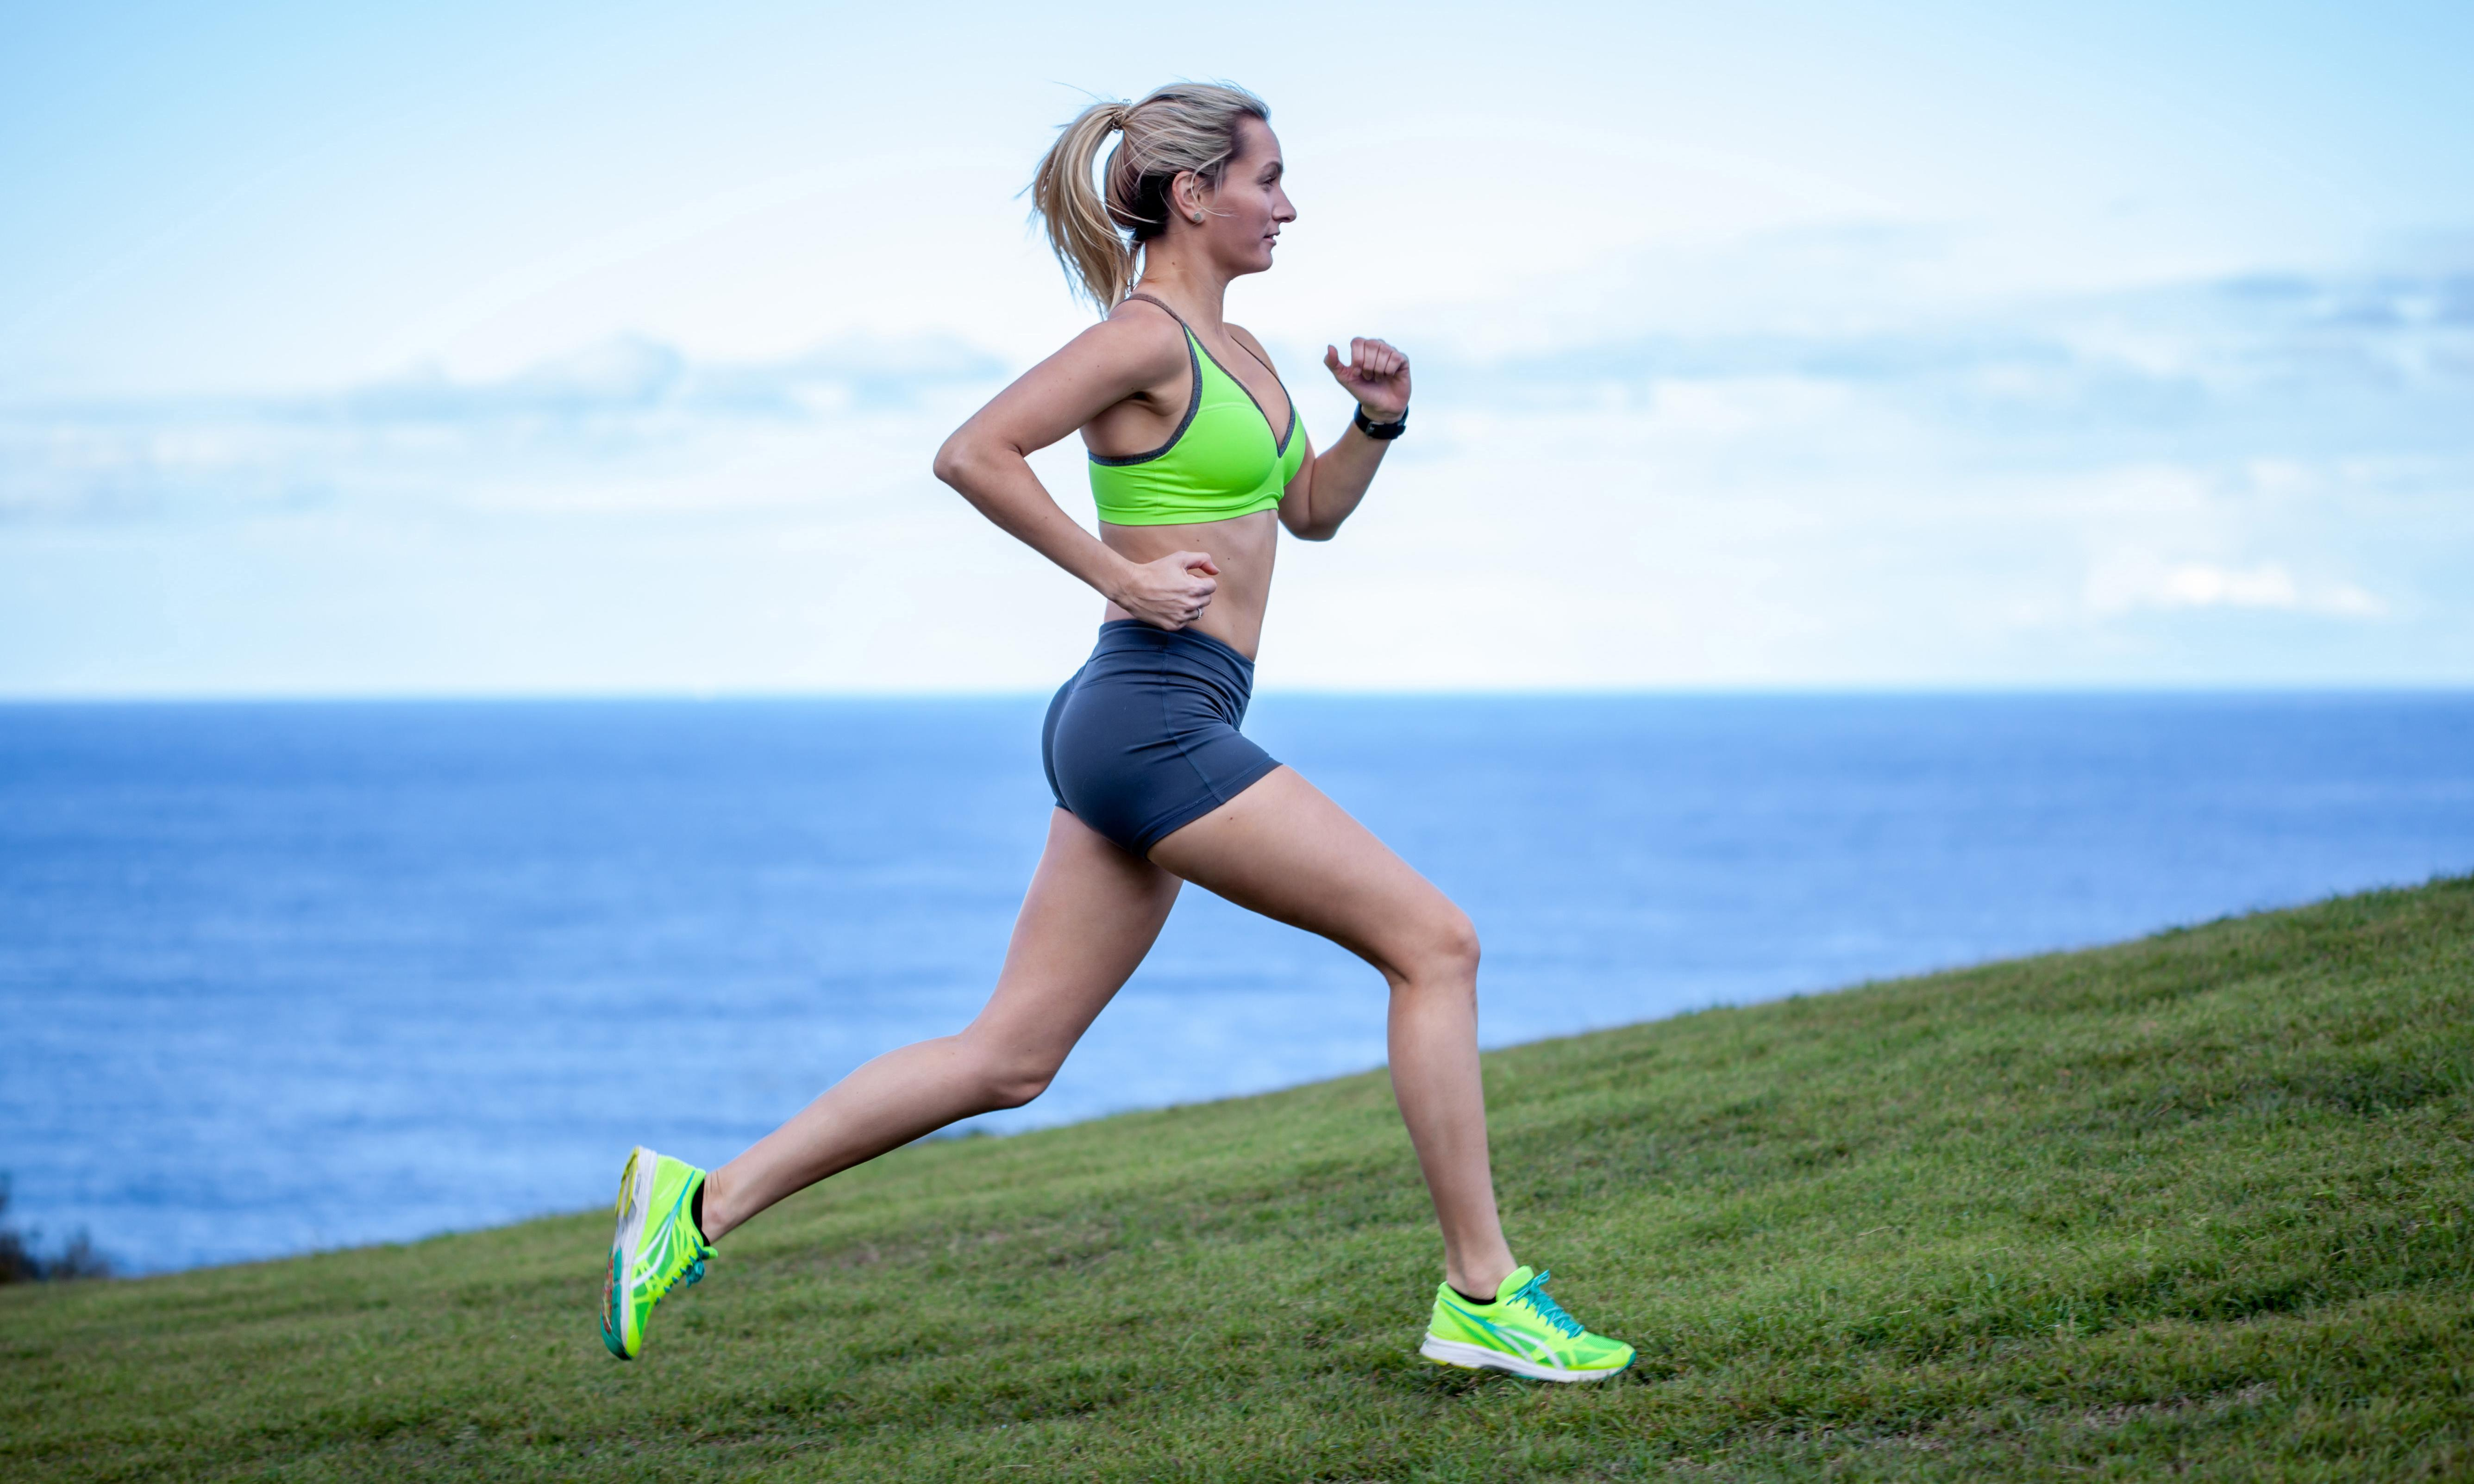 Seven ways to improve your sprinting